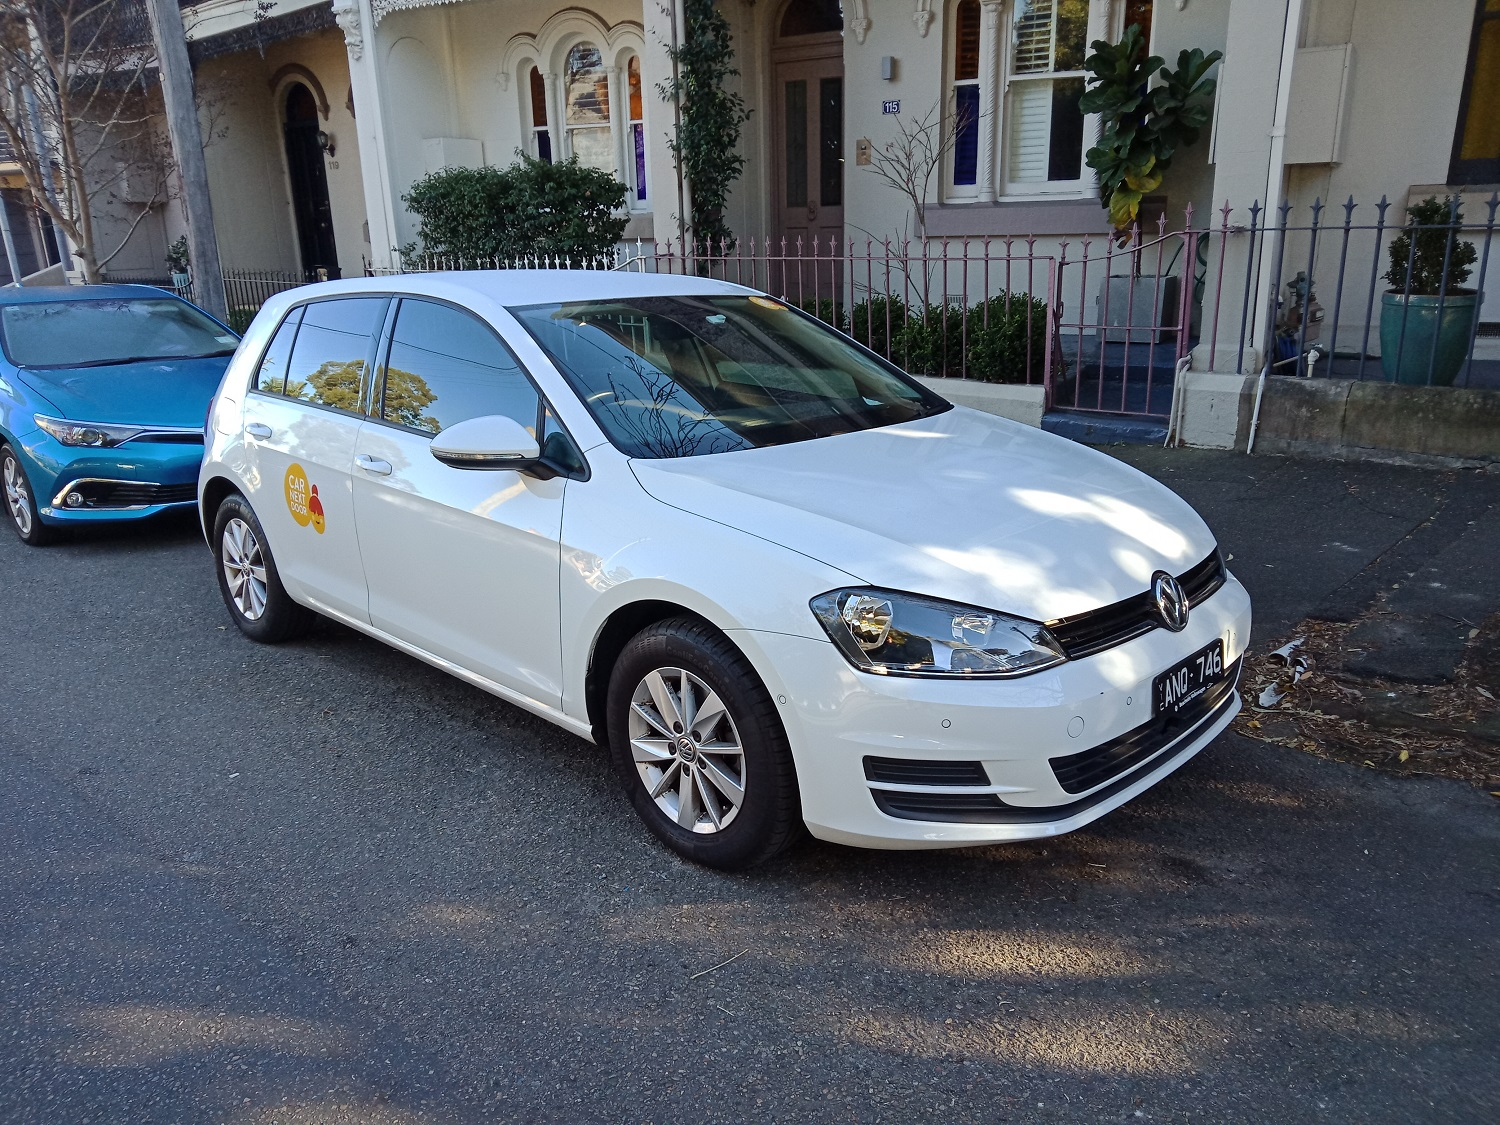 Picture of Adelle's 2017 Volkswagen Golf